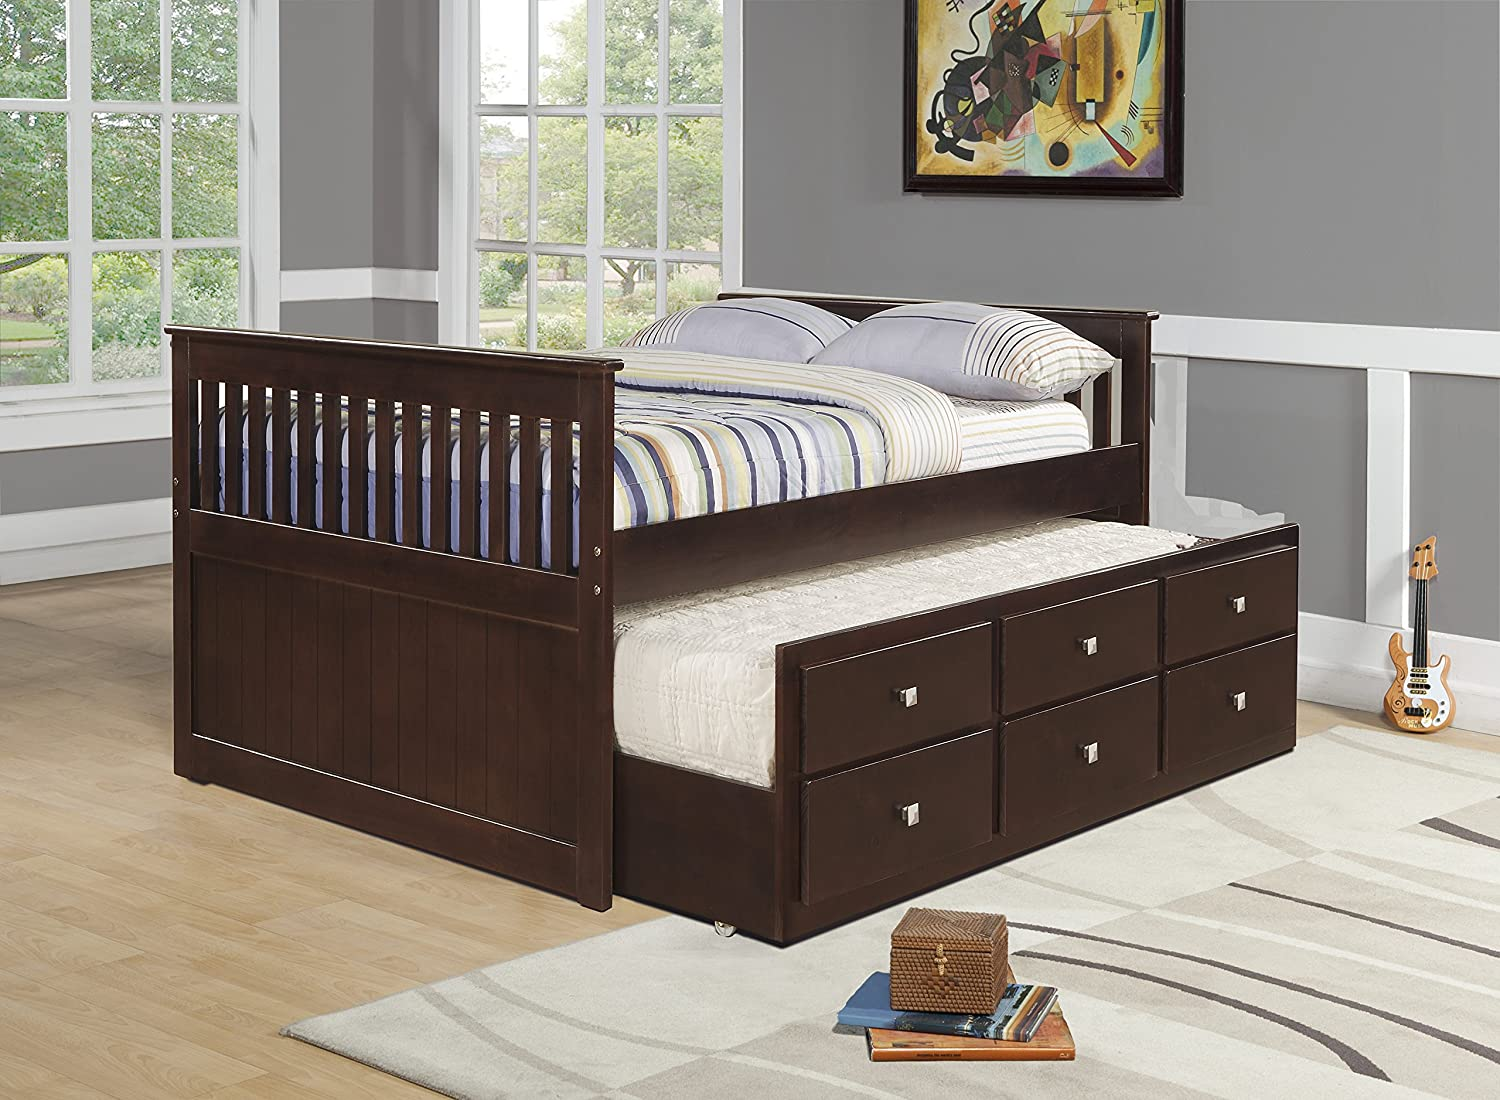 secondary bed mission grey headboard product camaflexi finish full over twin bunk trundle with tr